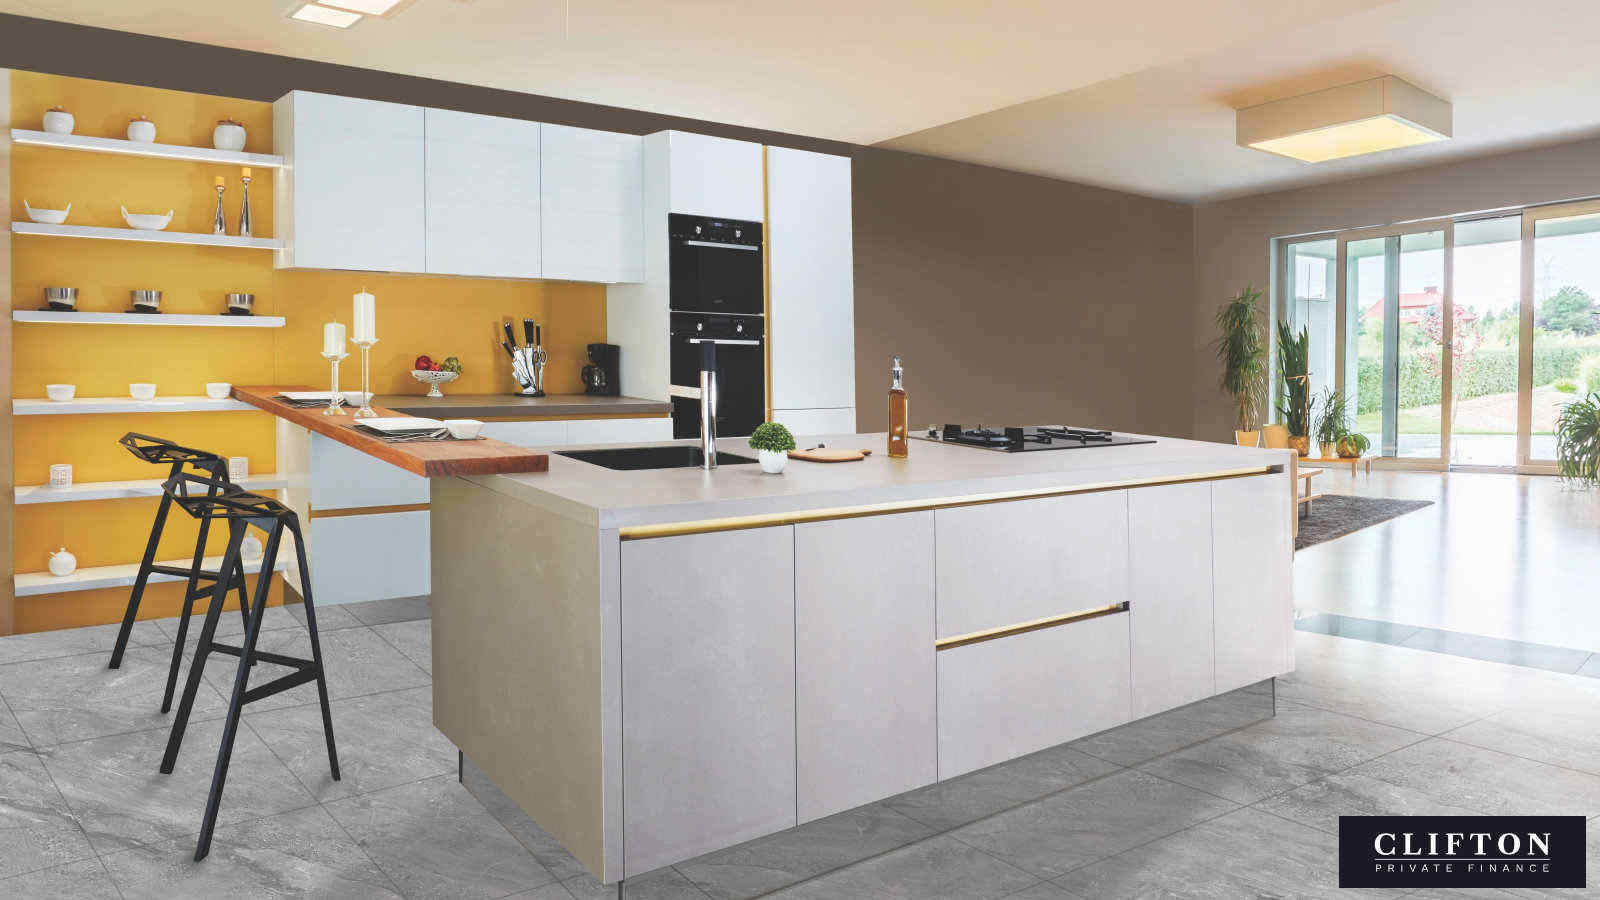 Kitchen renovations: how to get a loan for UK's most popular home improvement